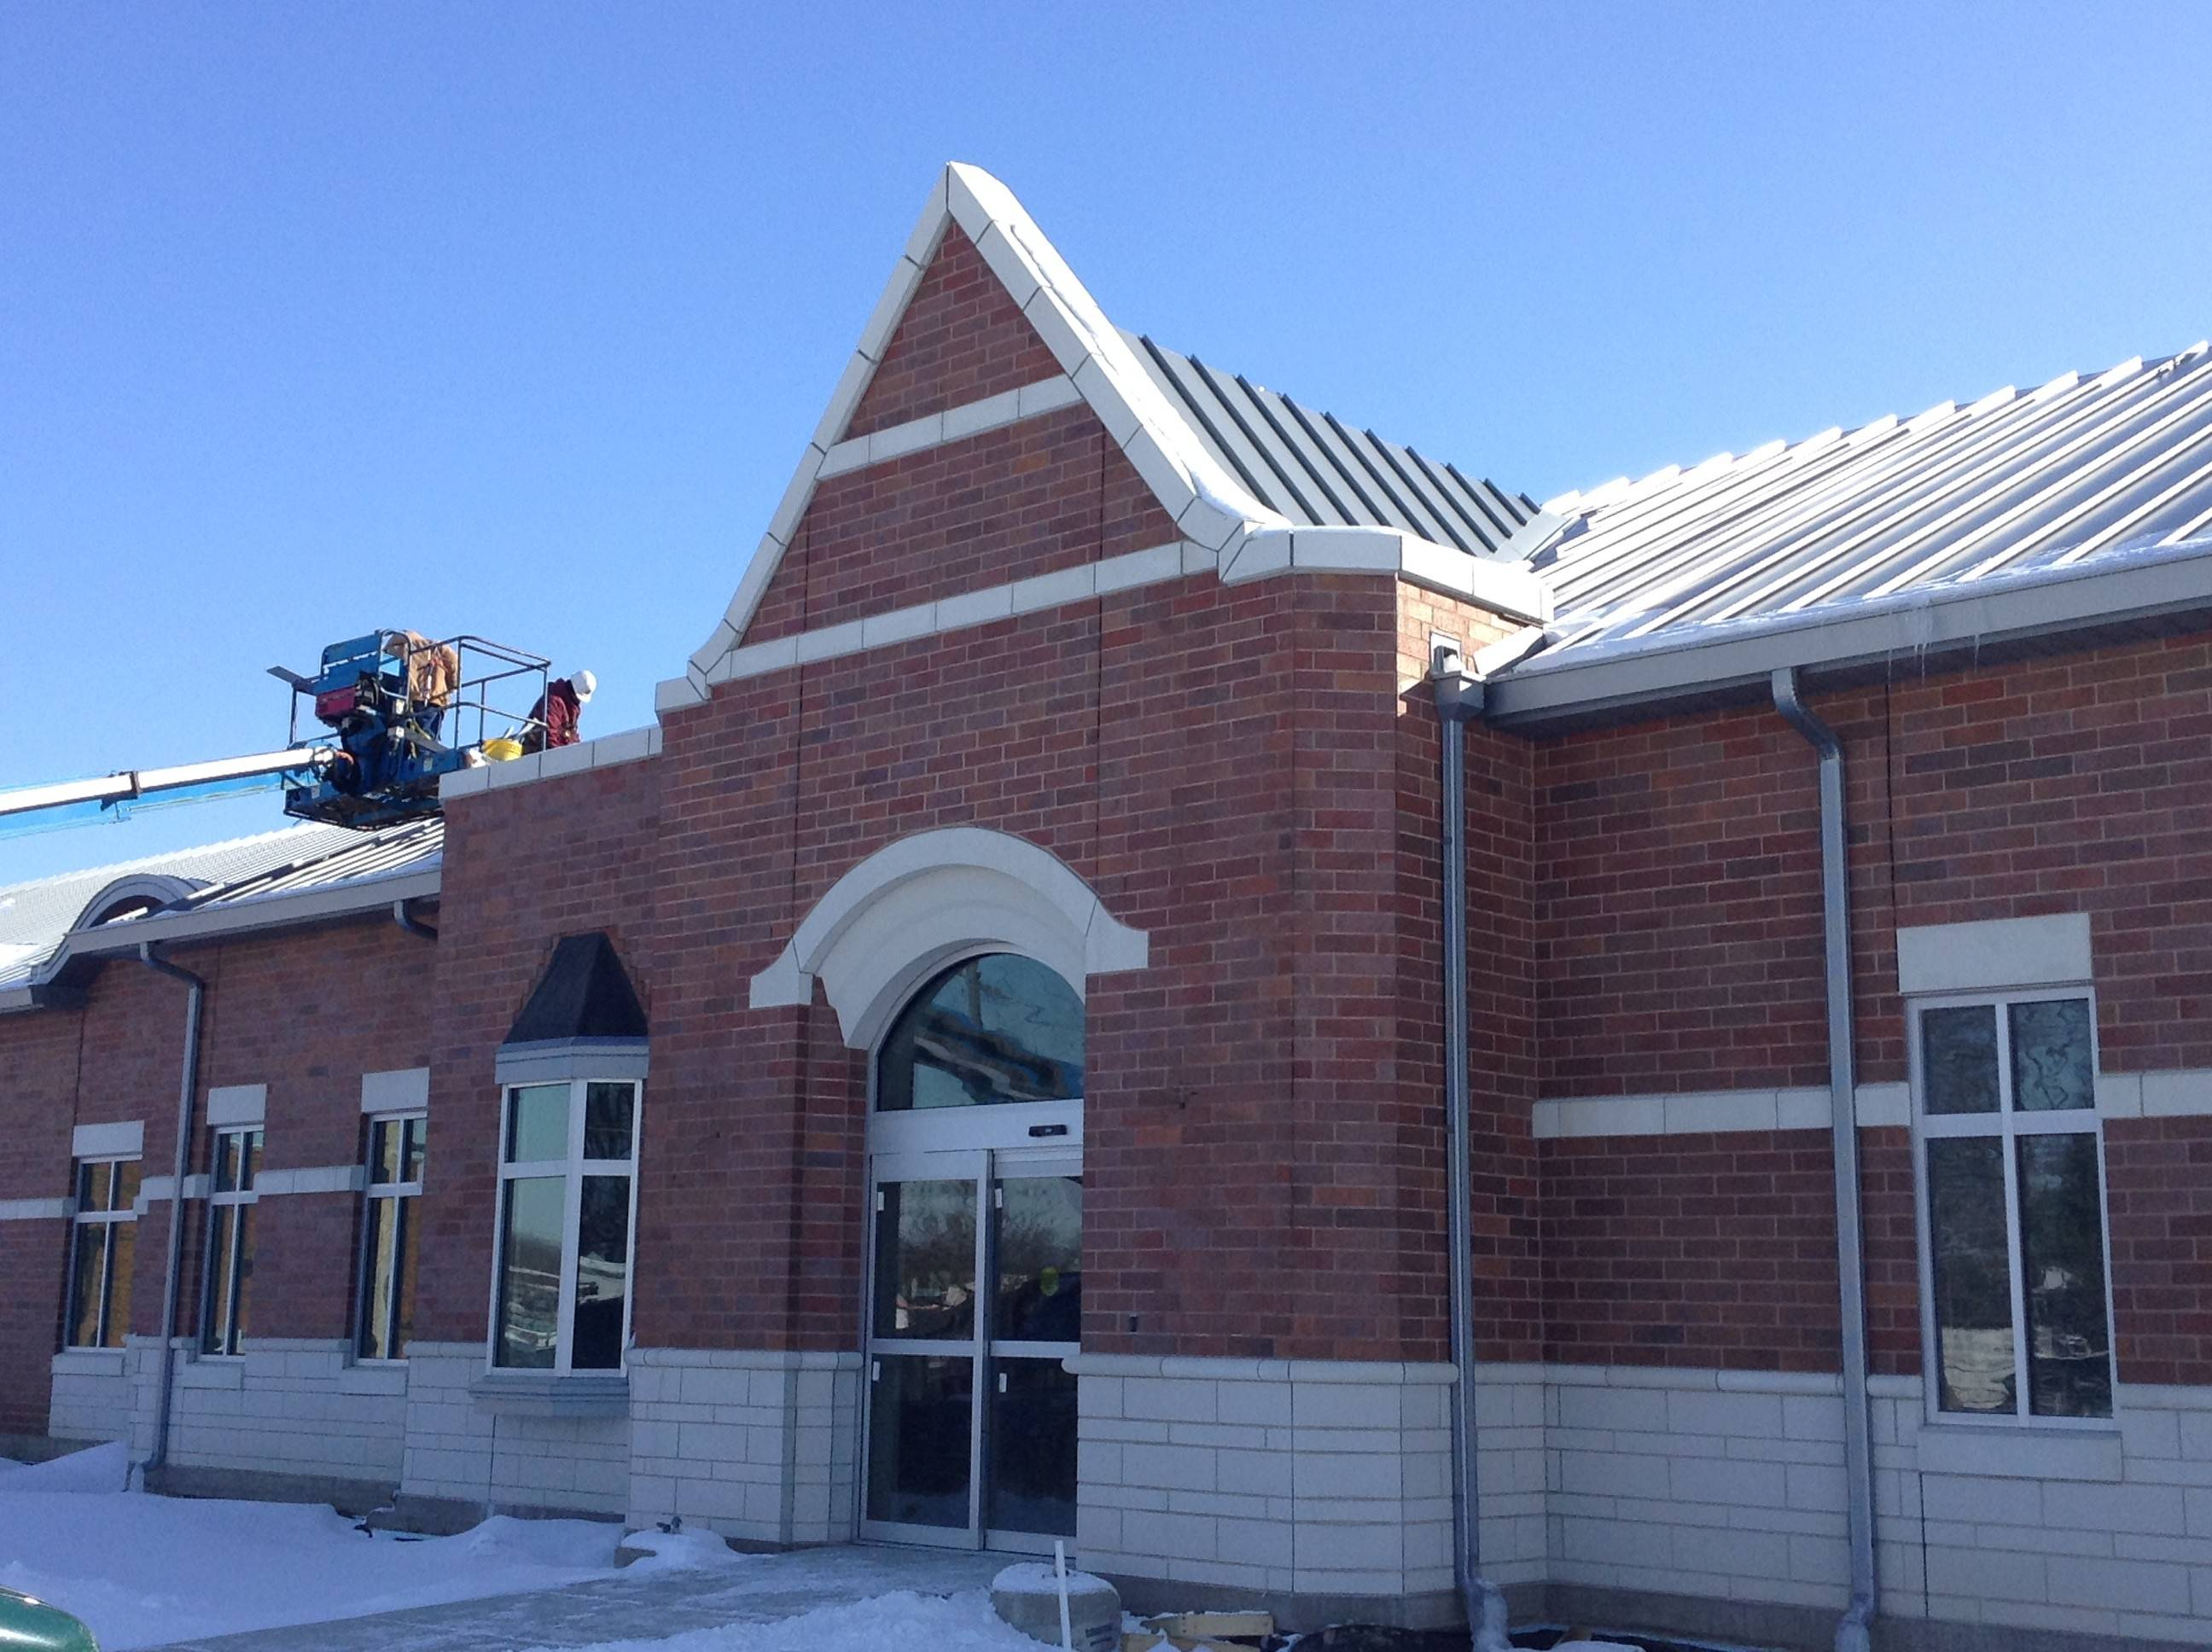 New Mundelein village hall nearing completion